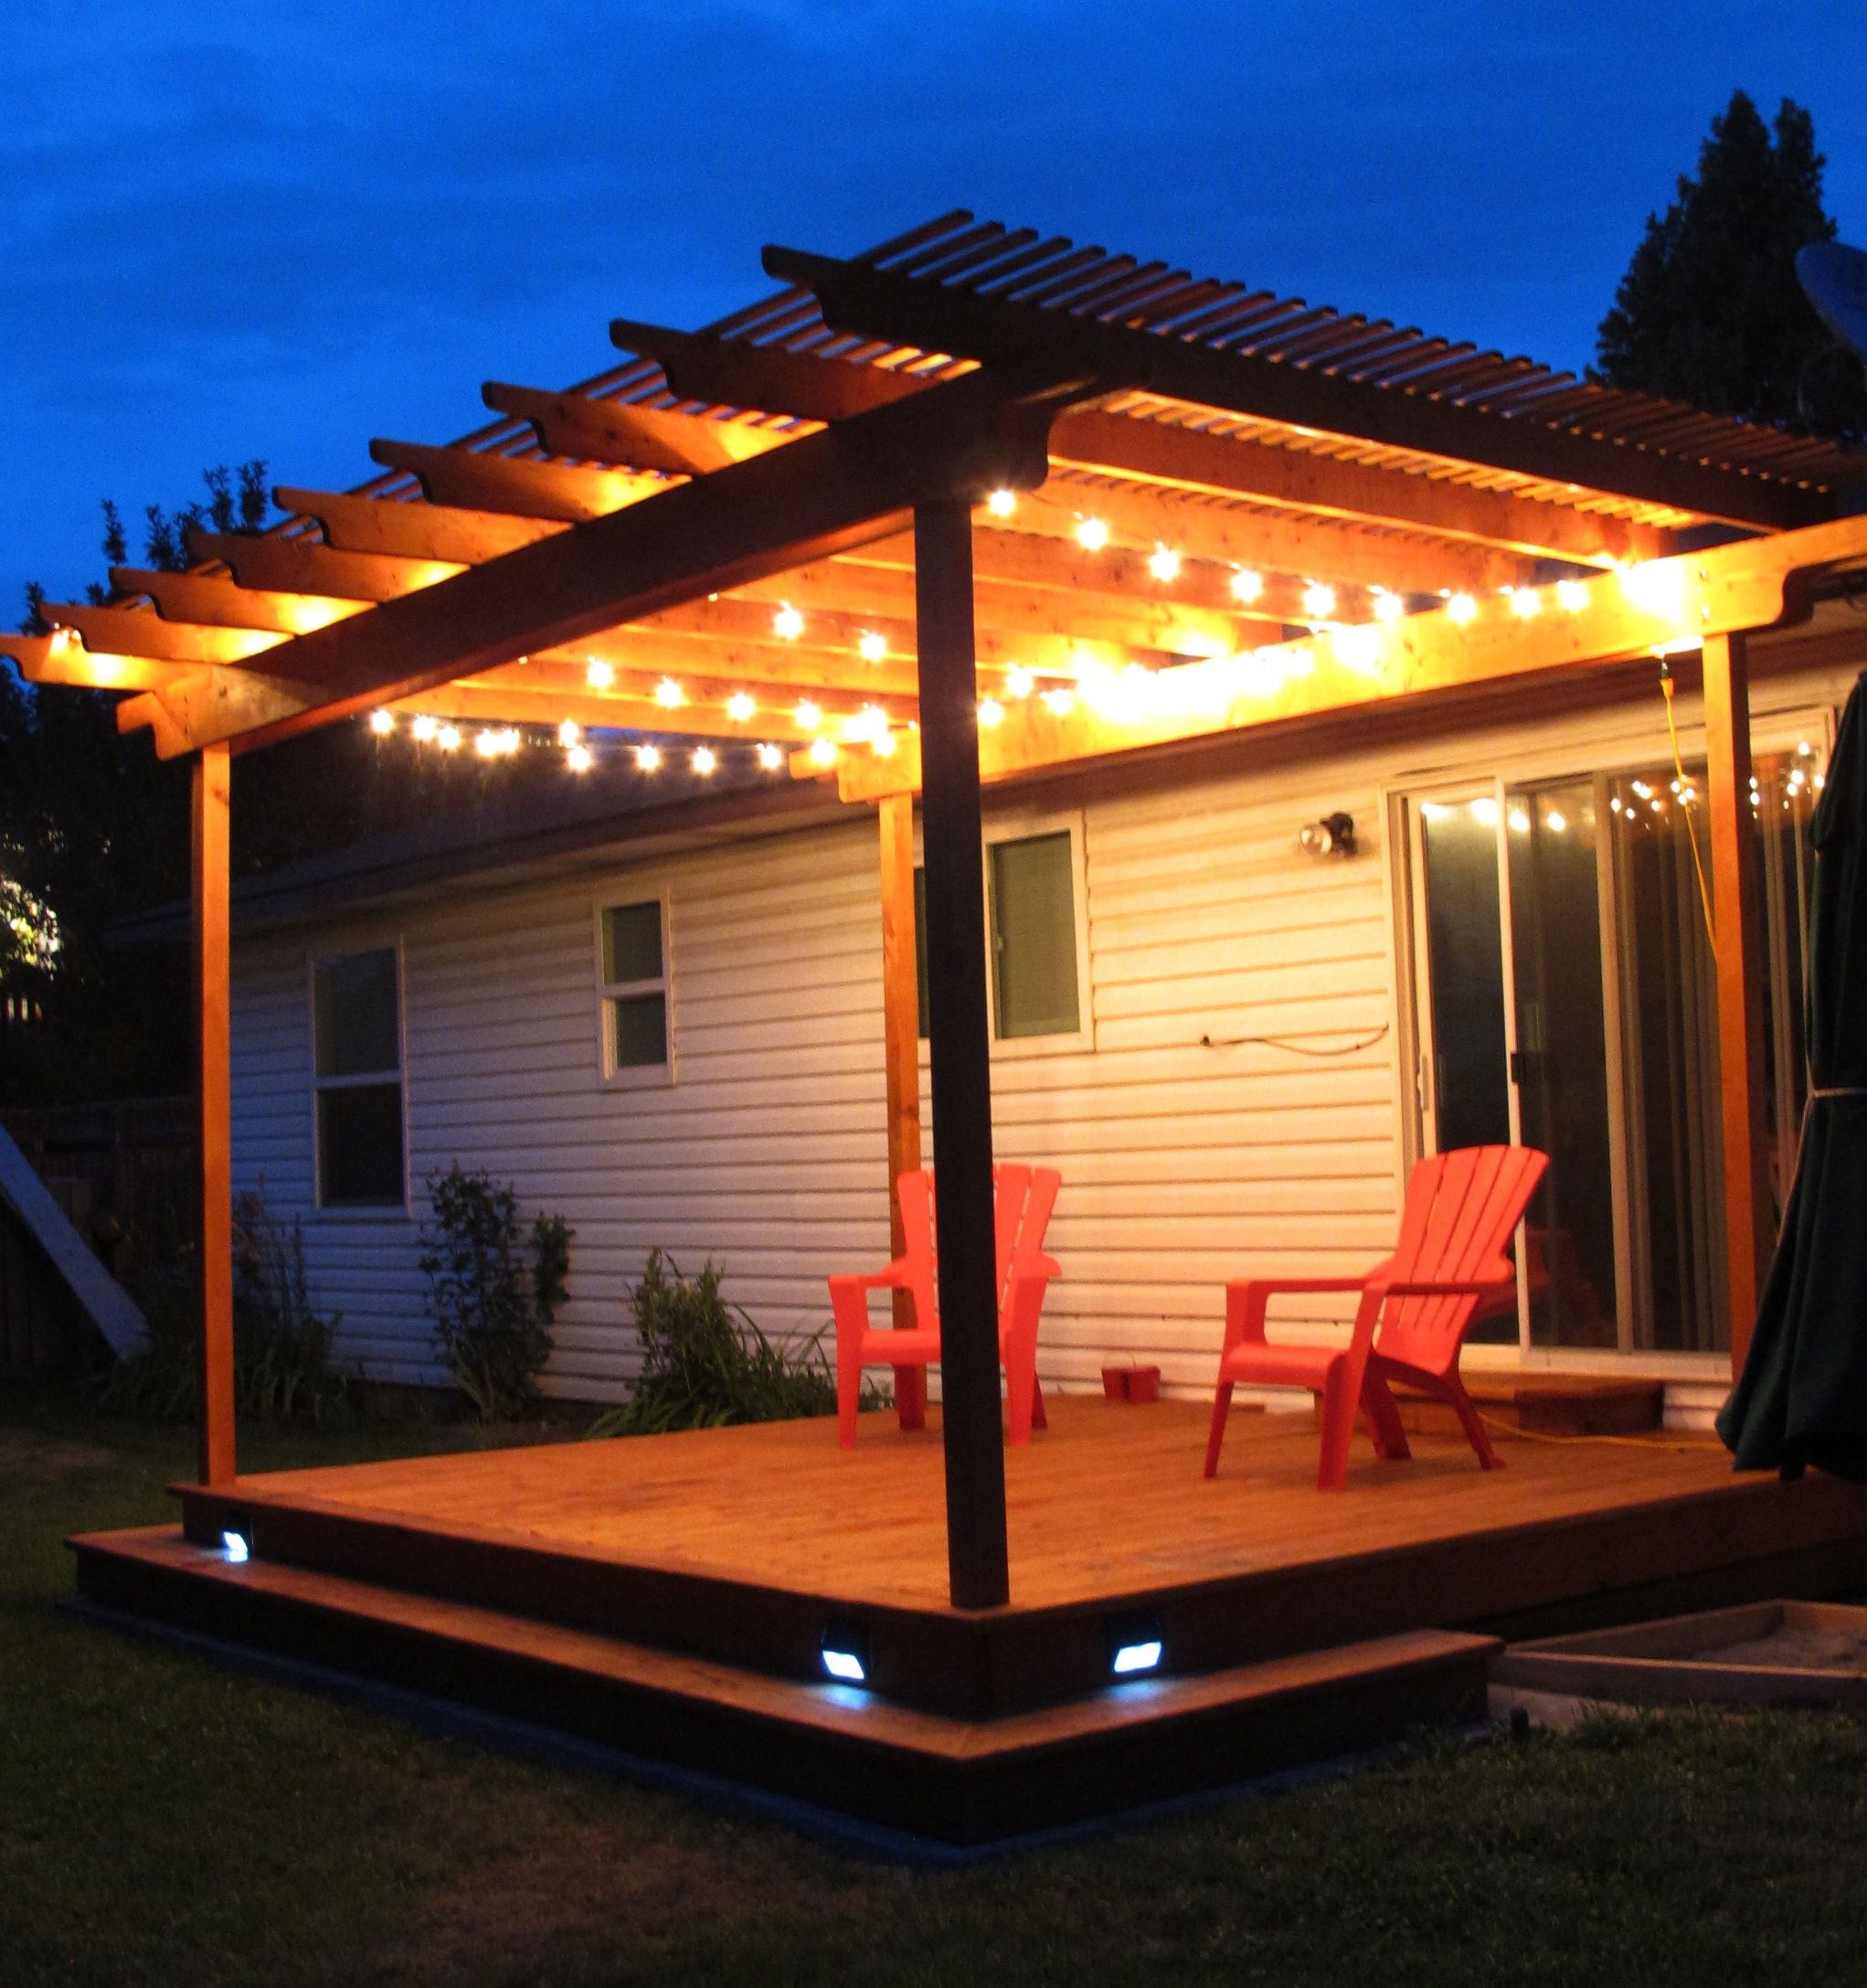 Awesome pergola deck with wraparound step and strand